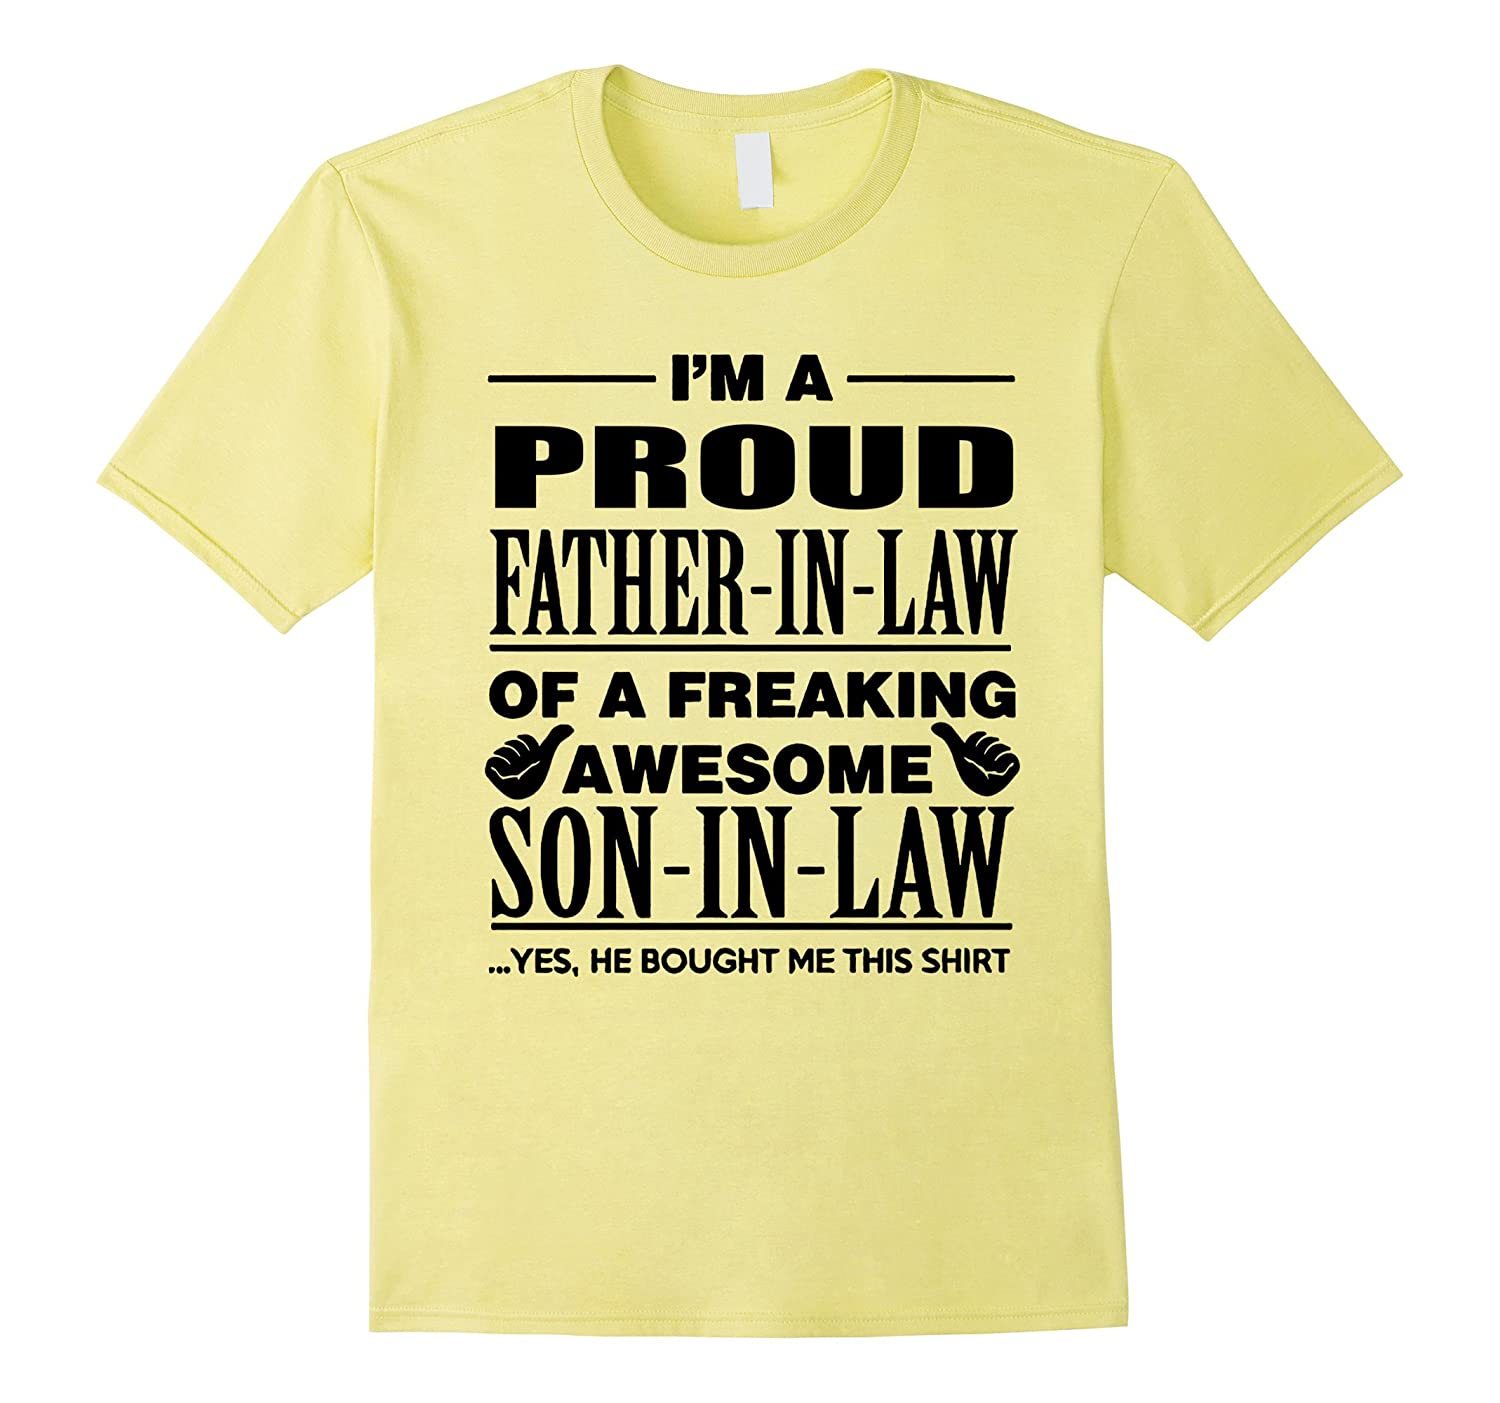 643259954 I'm A Proud Father-In-Law Freaking Awesome Son-In-Law …-CL – Colamaga